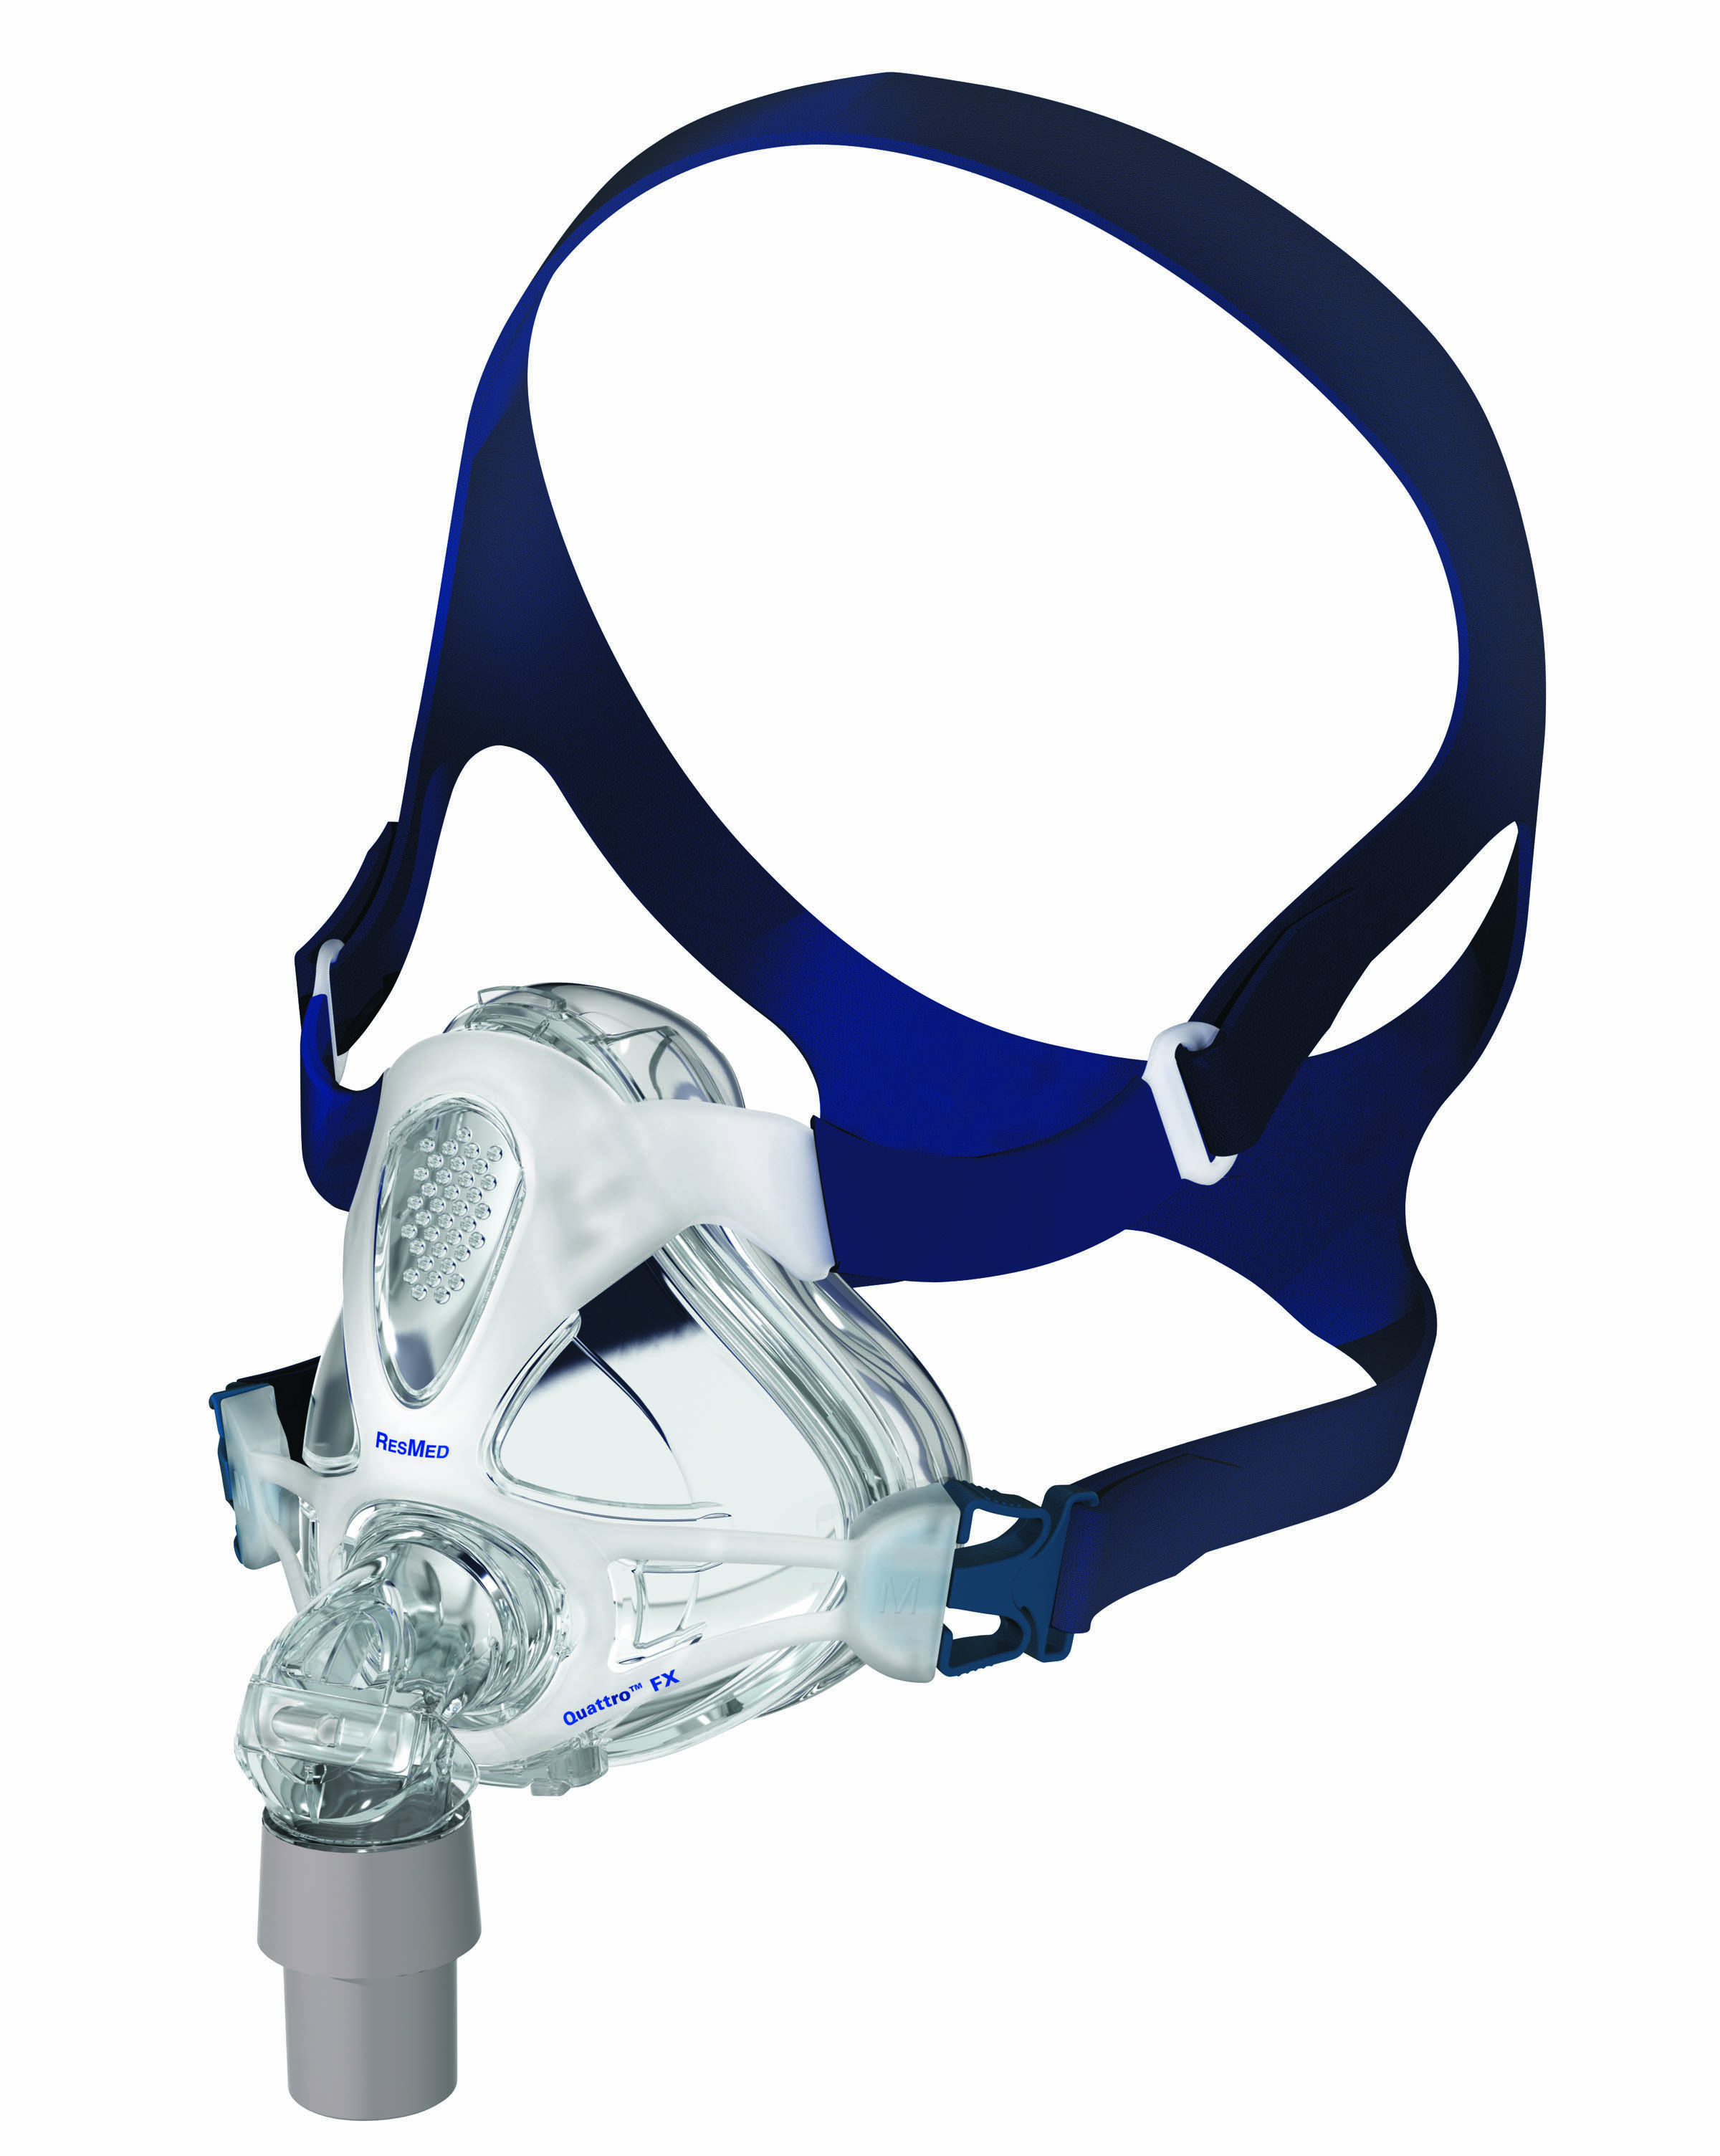 Quattro™ FX Full Face Mask System with Headgear.